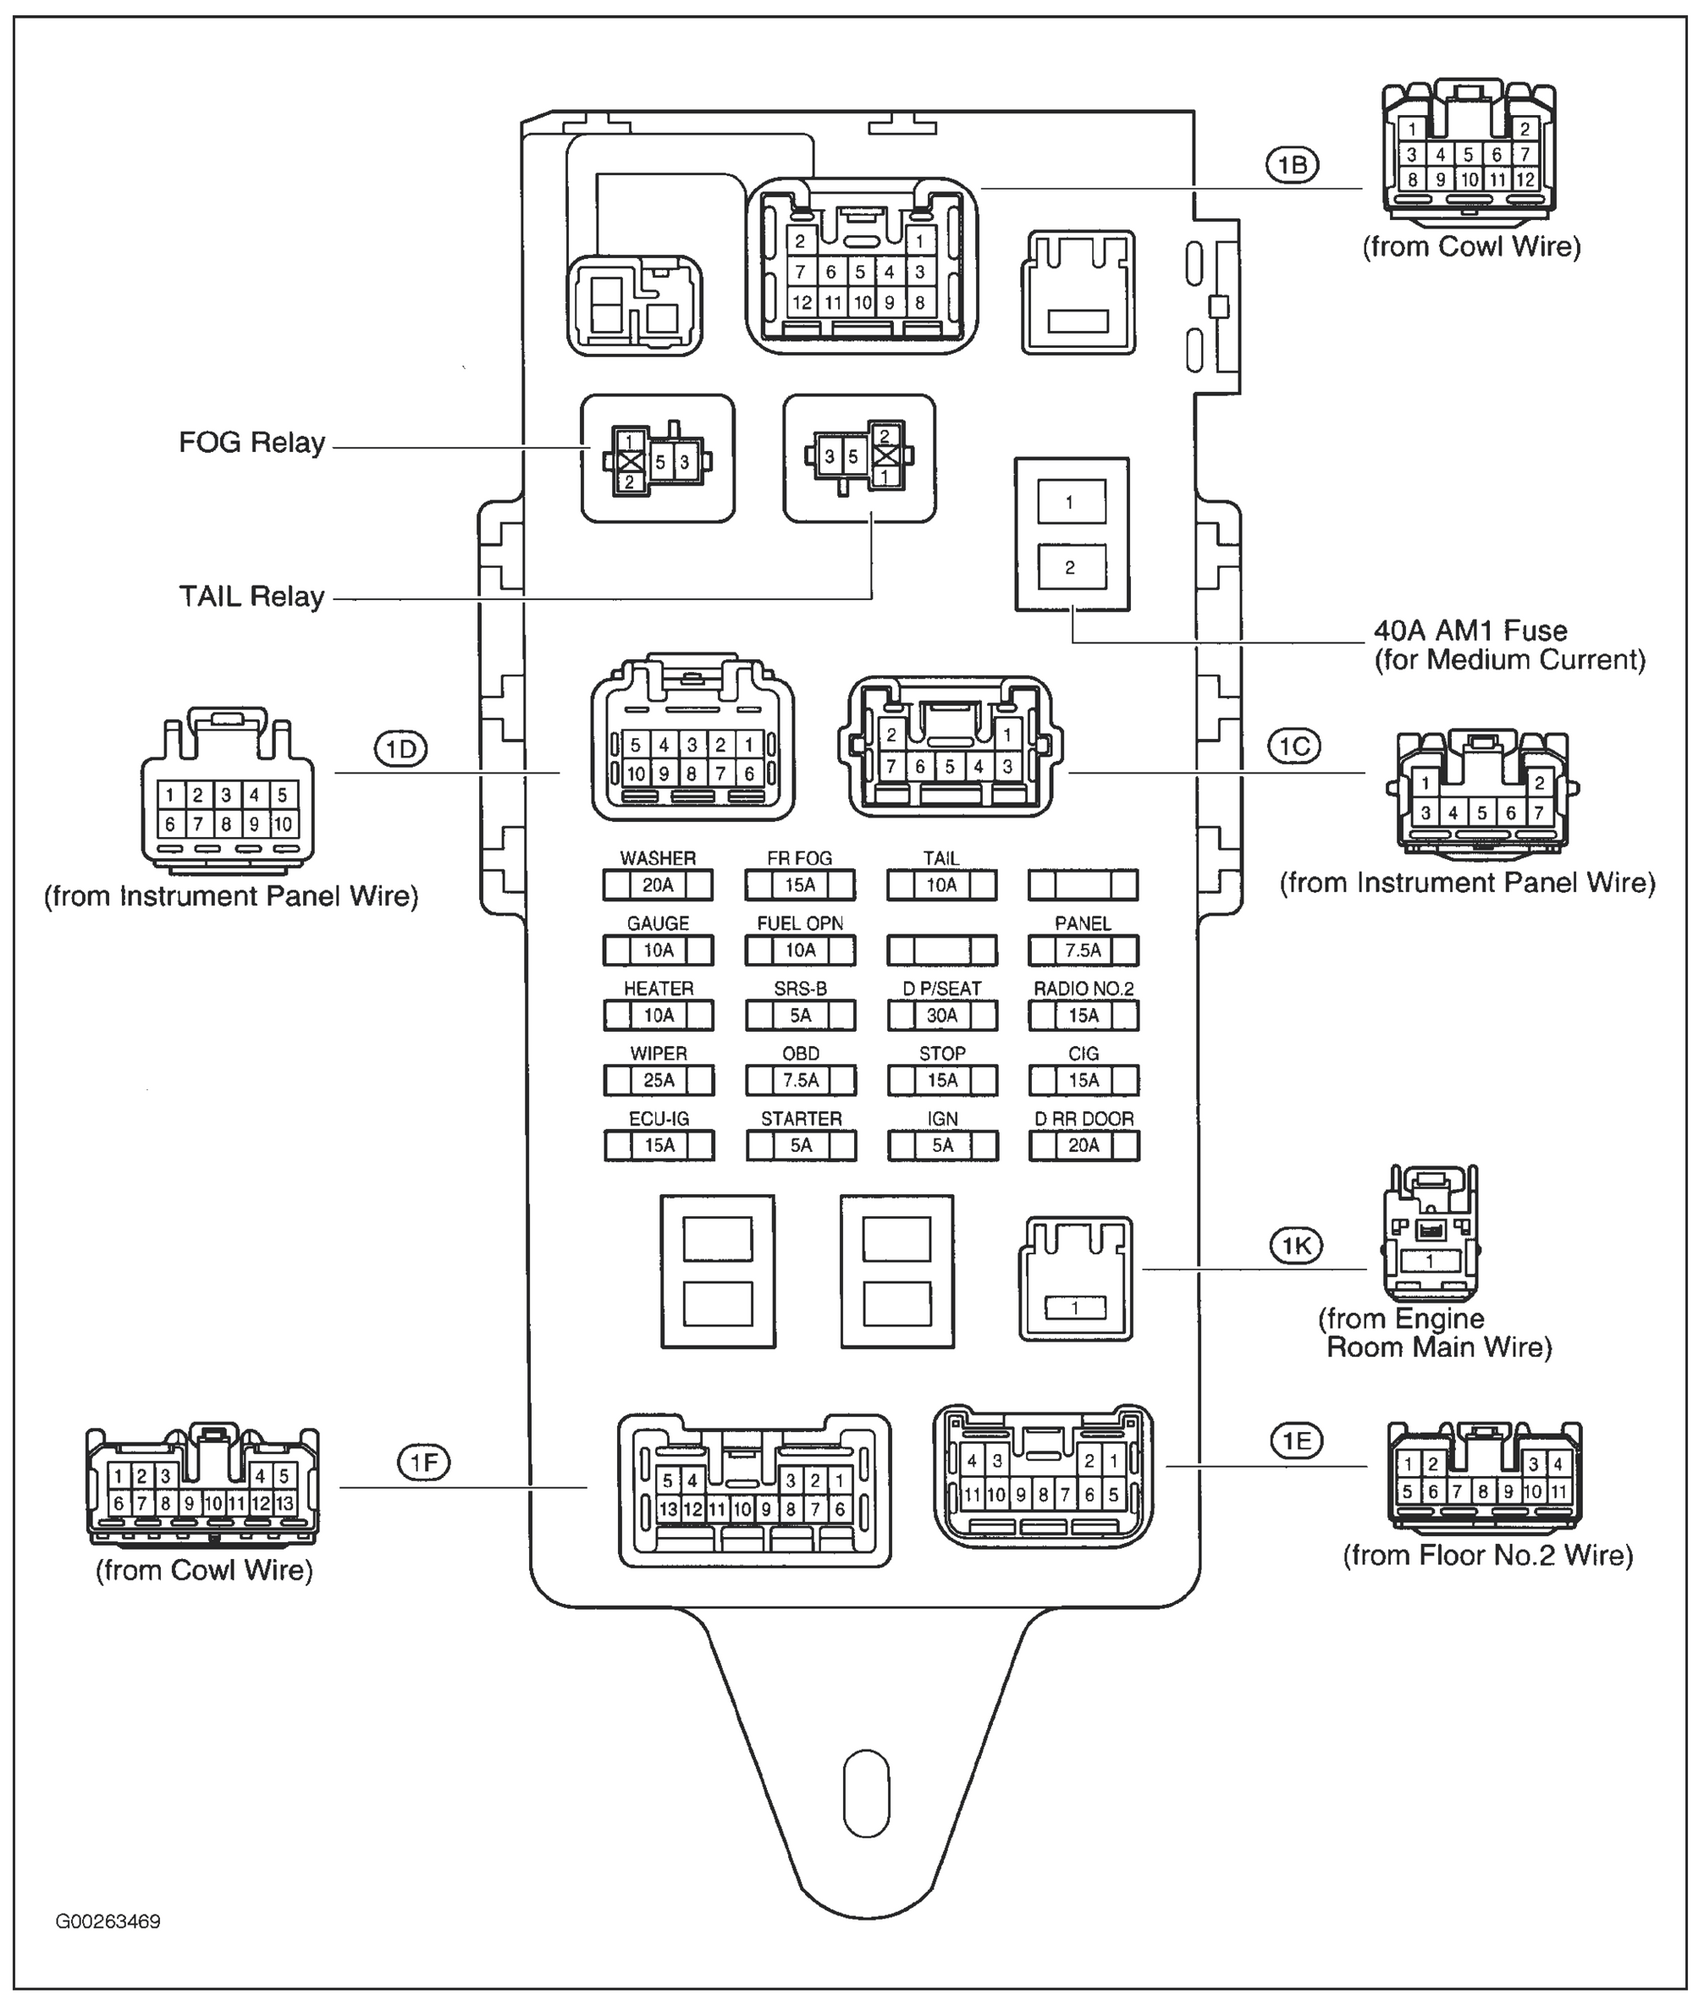 2006 lexus gs300 fuse diagram wiring diagram todayslexus gs430 fuse box simple wiring diagram 2006 lexus gs300 spark plugs 2006 lexus gs300 fuse diagram